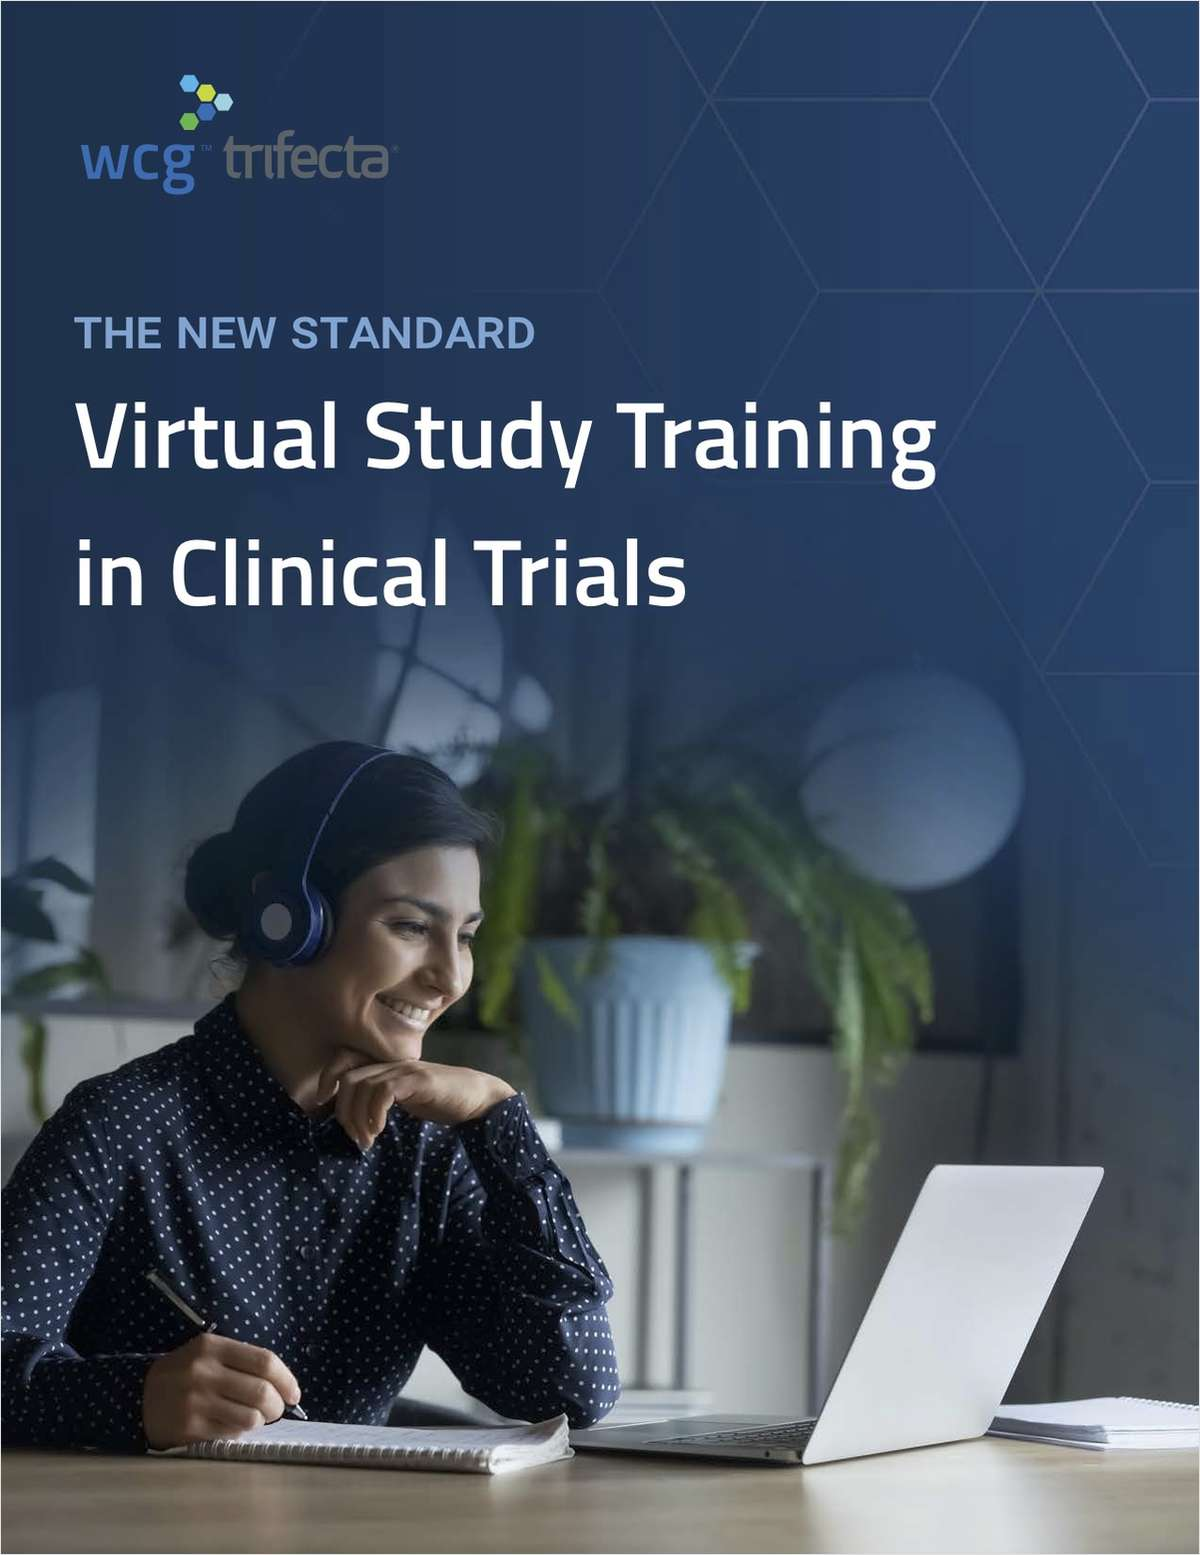 The New Standard: Virtual Study Training in Clinical Trials